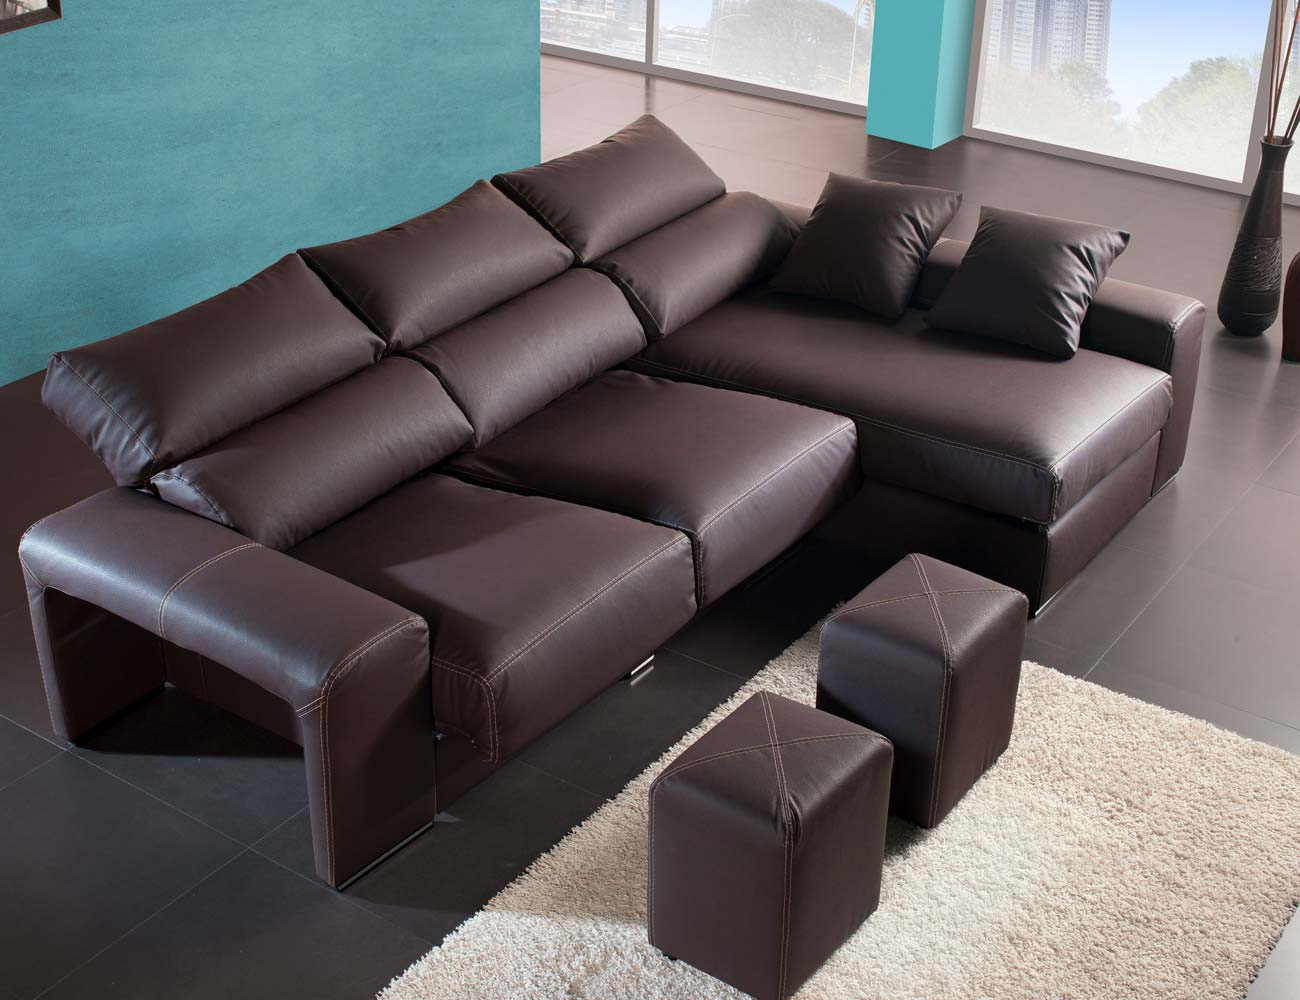 Sofa chaiselongue moderno polipiel chocolate poufs taburetes16